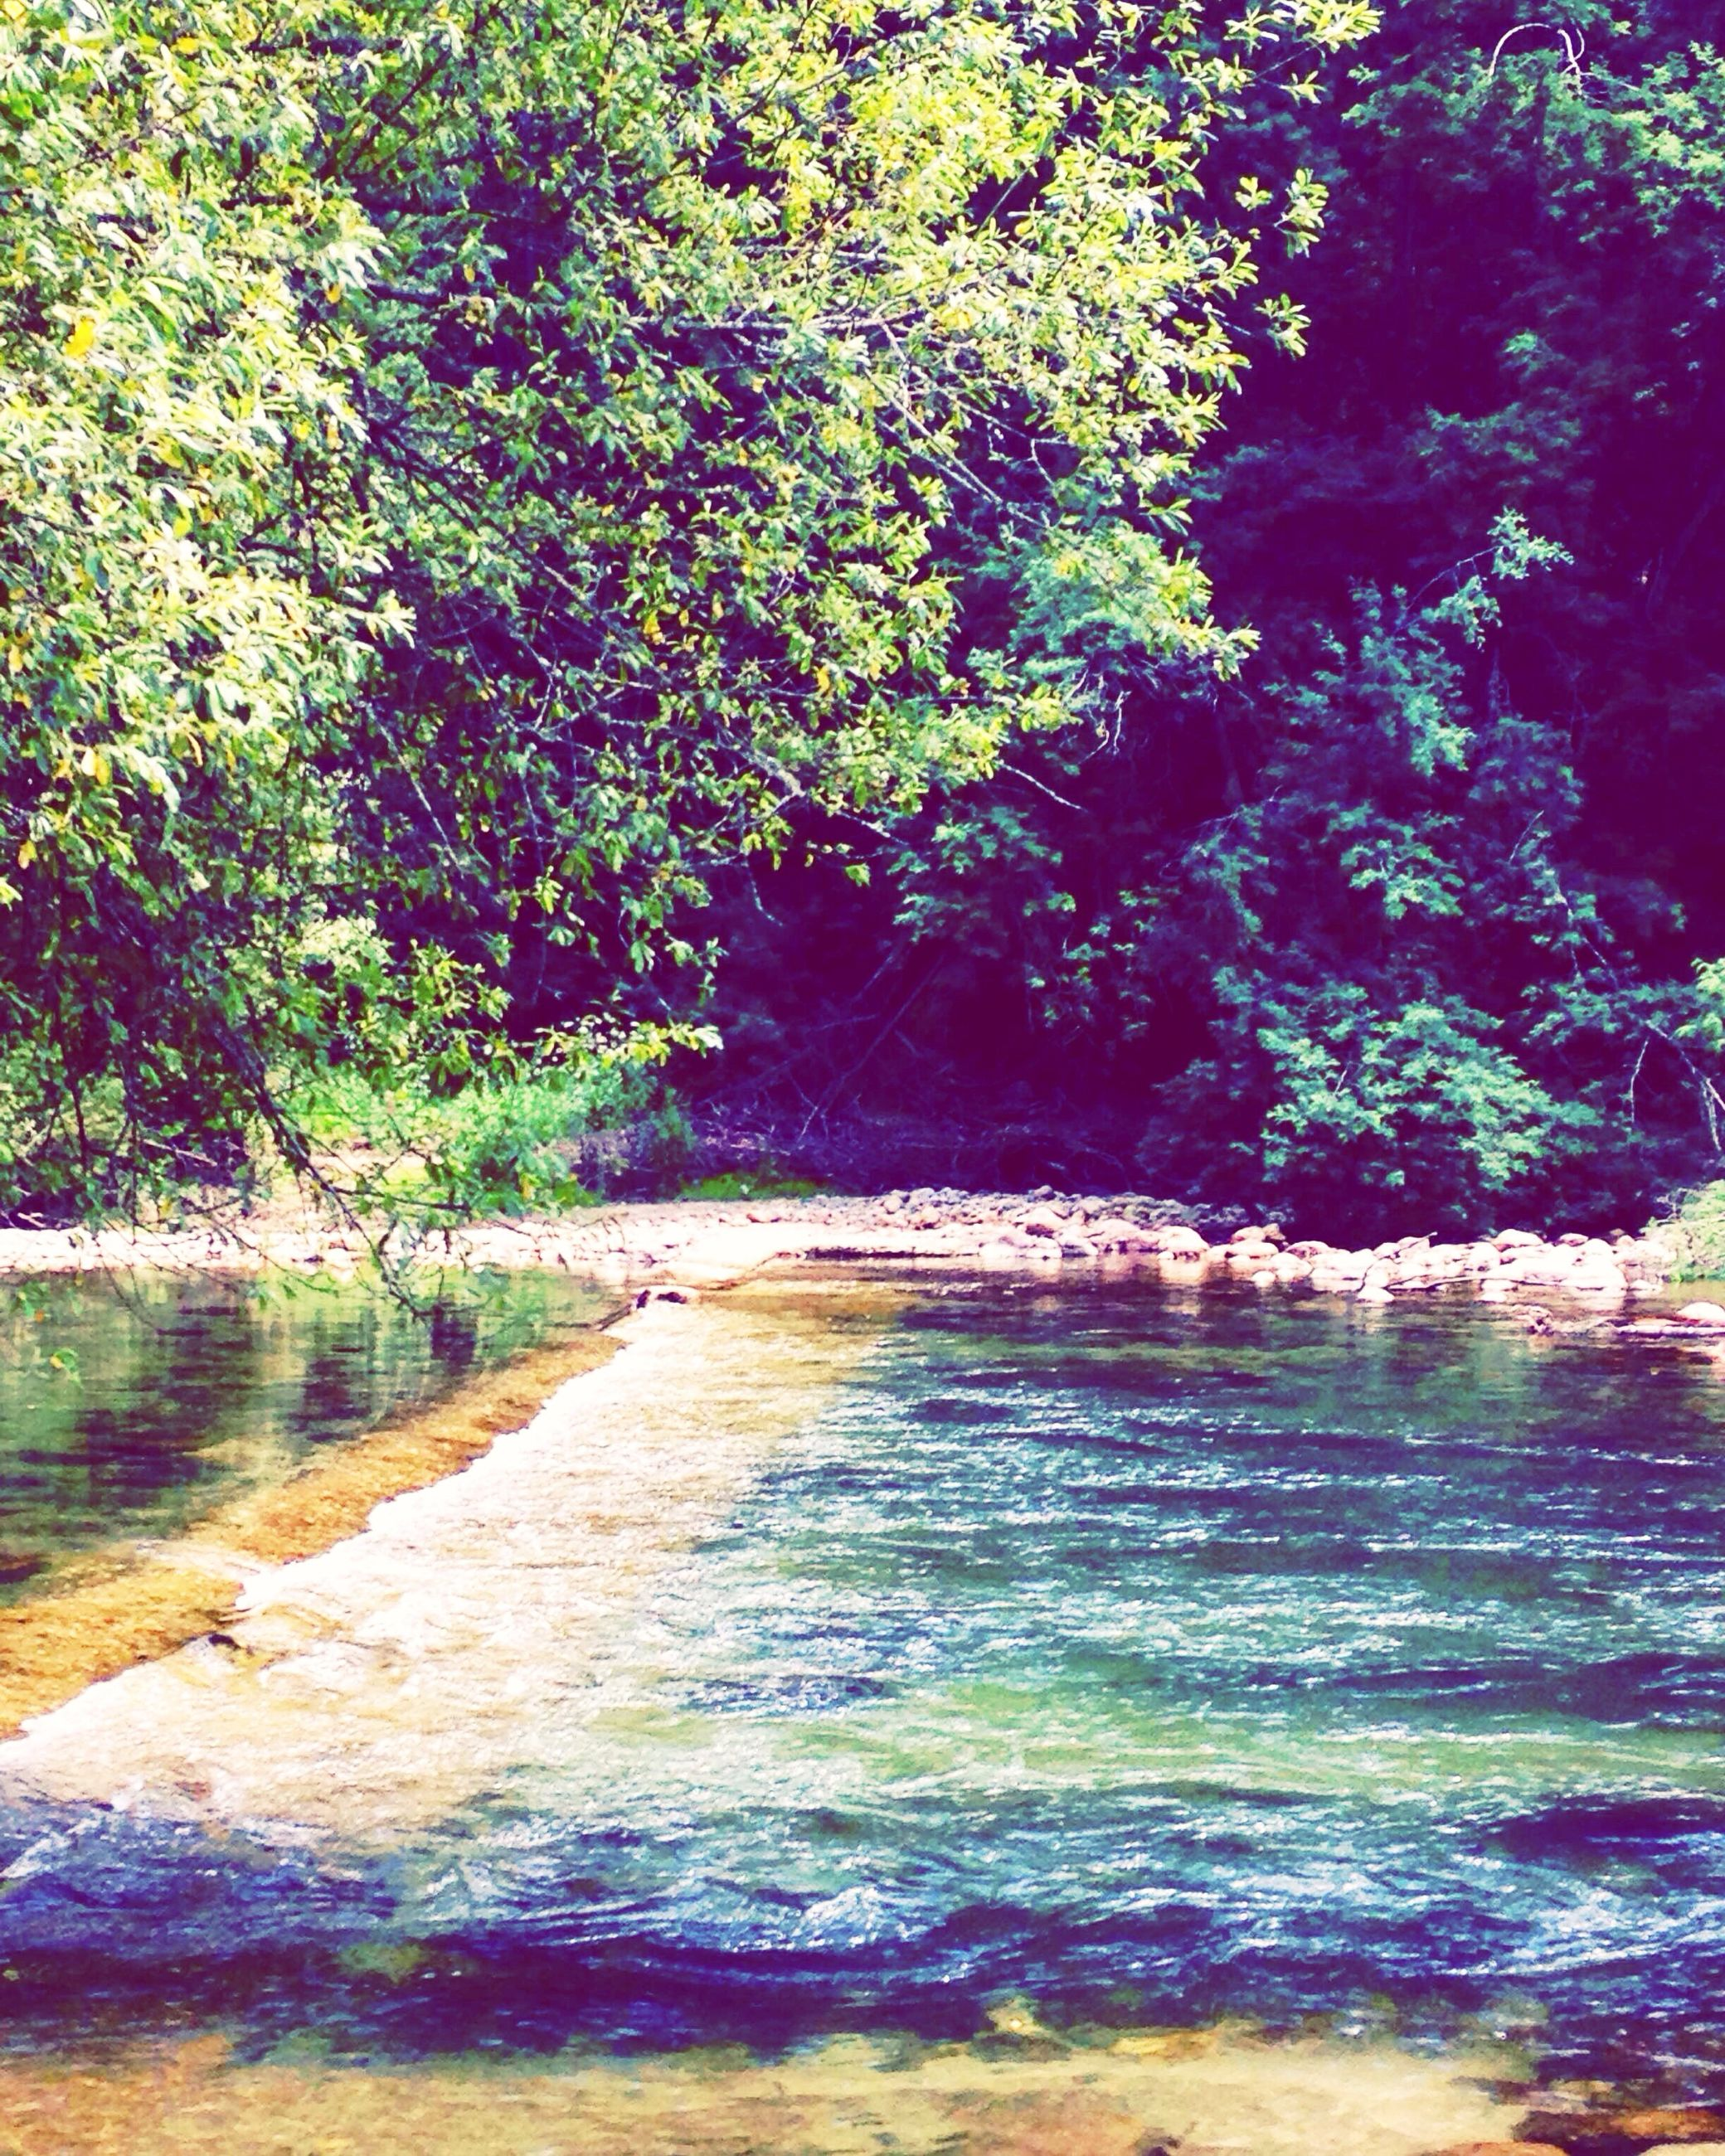 tree, water, tranquility, nature, tranquil scene, beauty in nature, growth, scenics, the way forward, green color, forest, day, outdoors, idyllic, no people, branch, plant, sunlight, river, non-urban scene